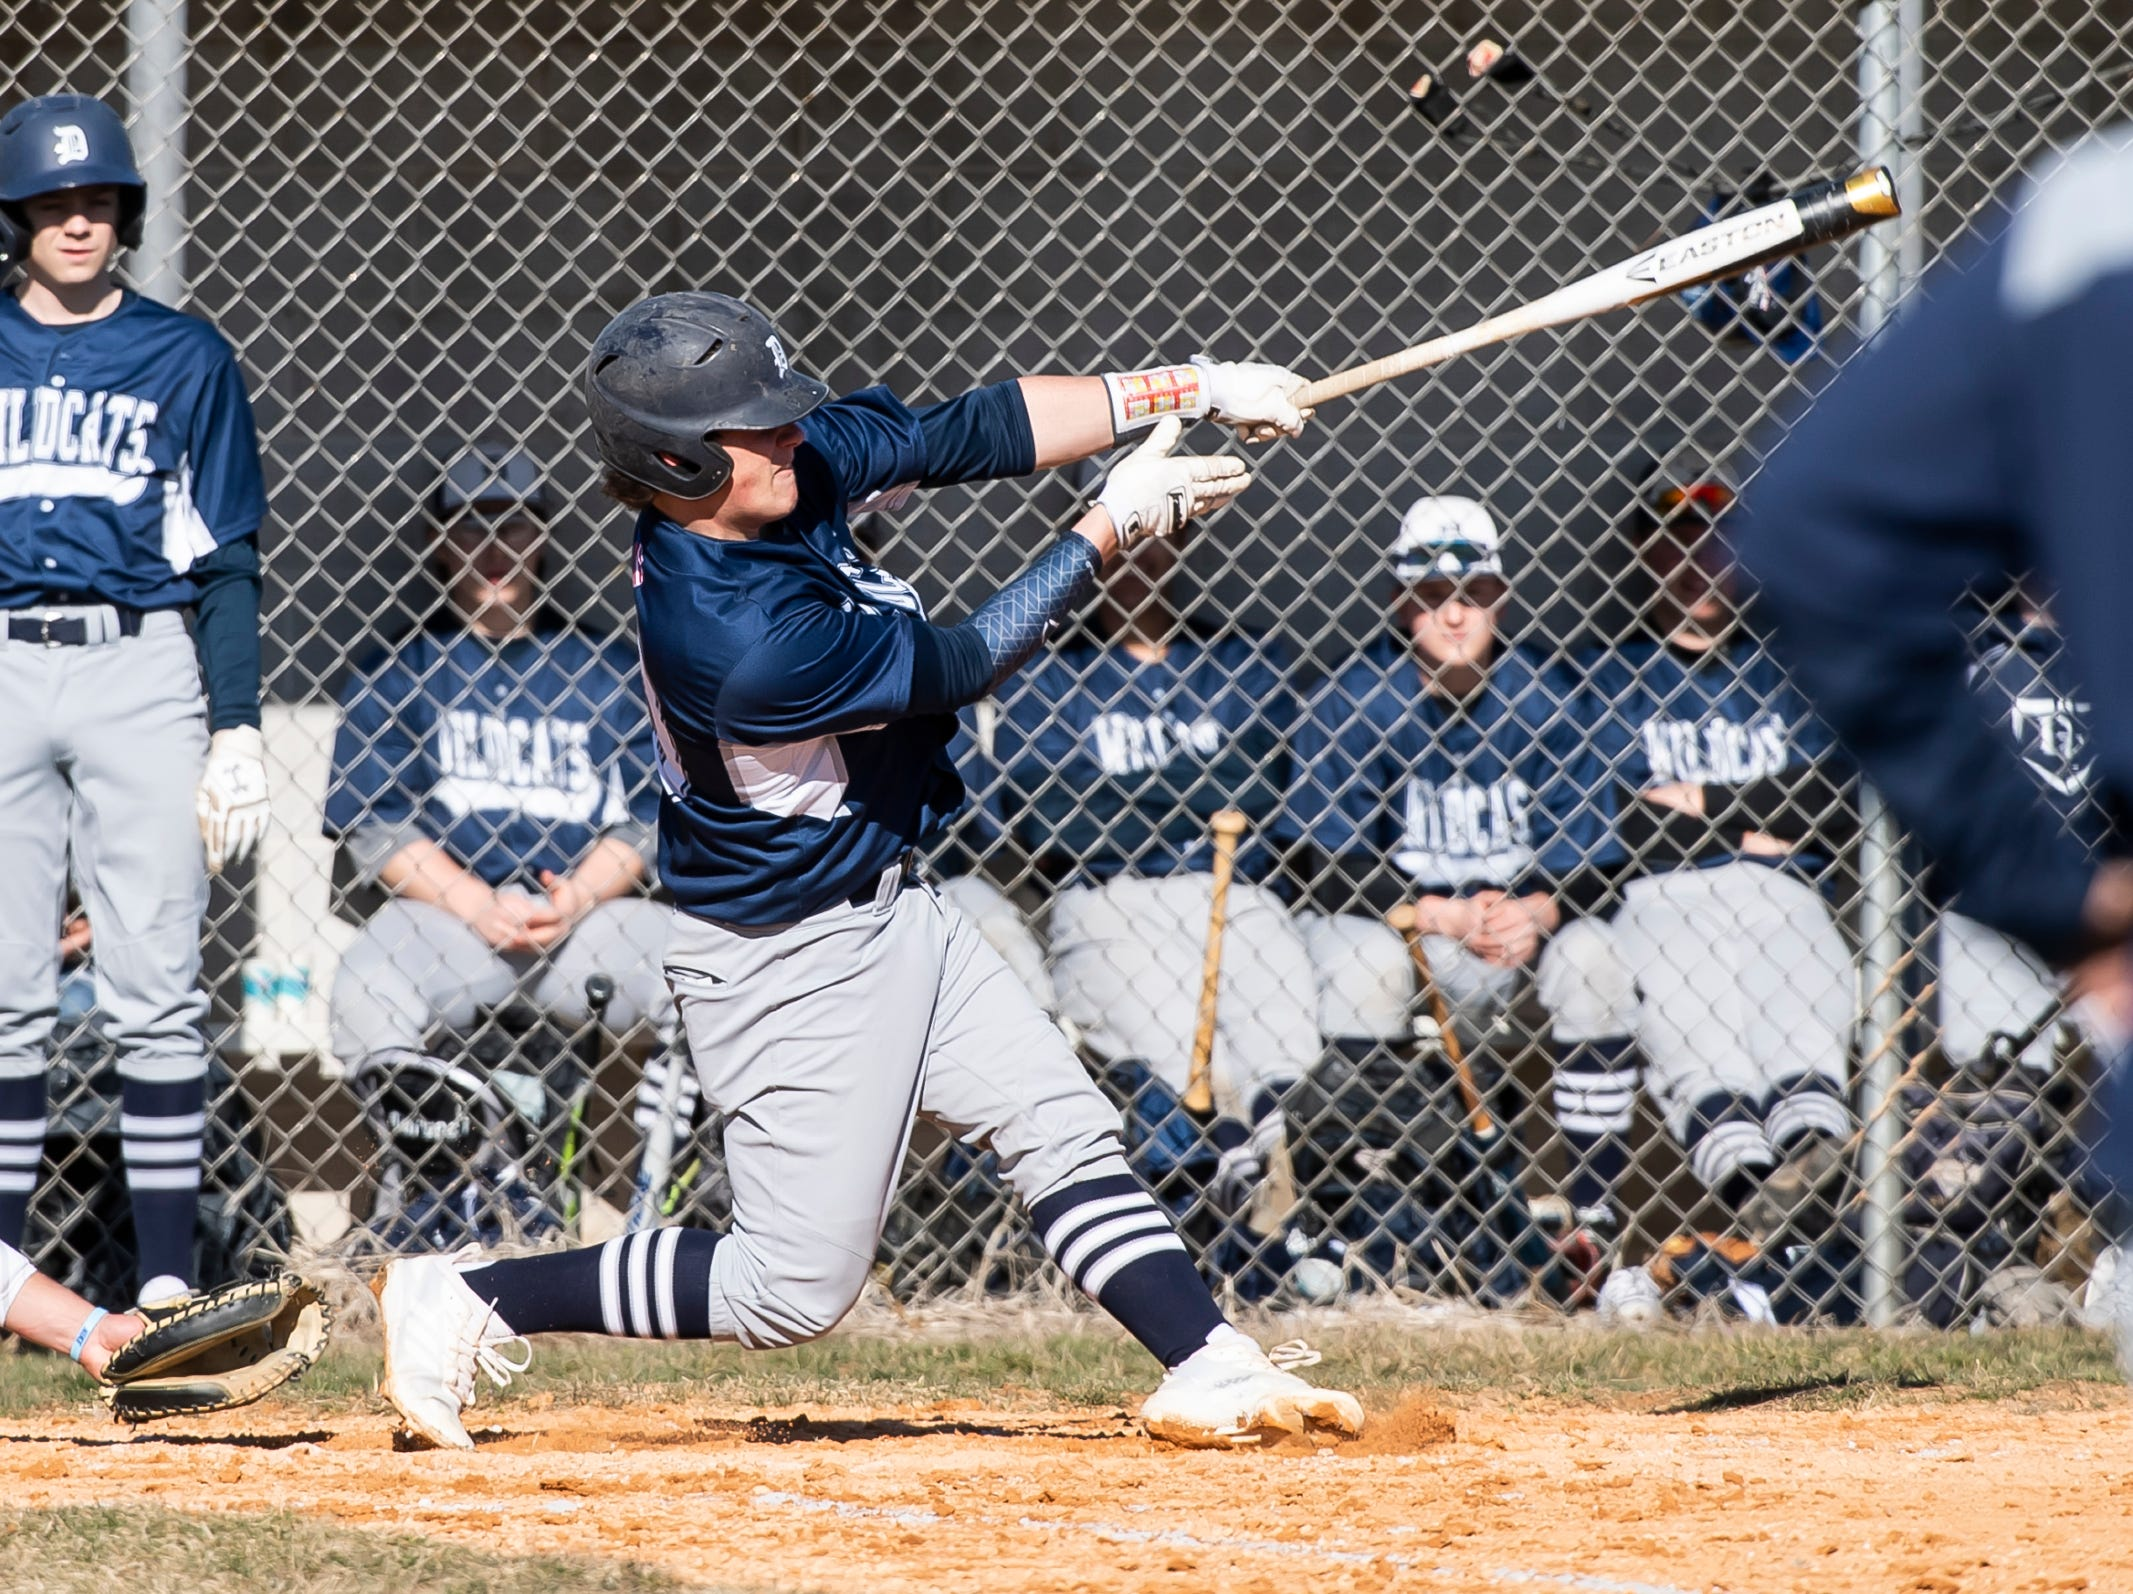 Dallastown's Julian Bailey follows through on his swing on a double during a YAIAA baseball game against Gettysburg on Wednesday, March 27, 2019.